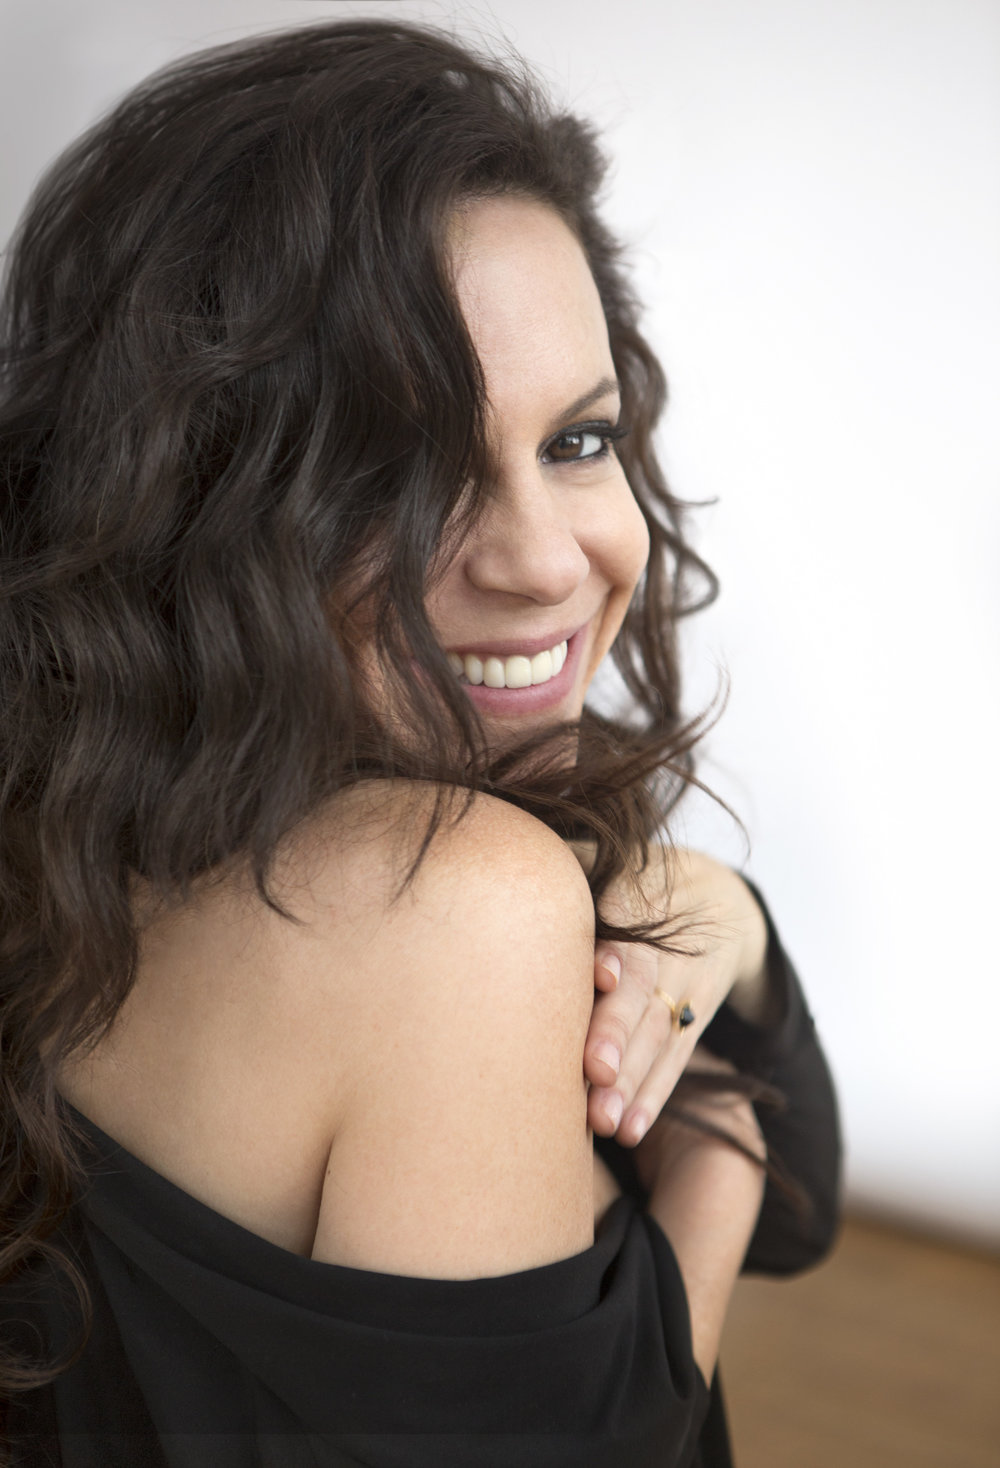 Bebel Gilberto Live at Tarrytown Music Hall 2/18 @ 8PM